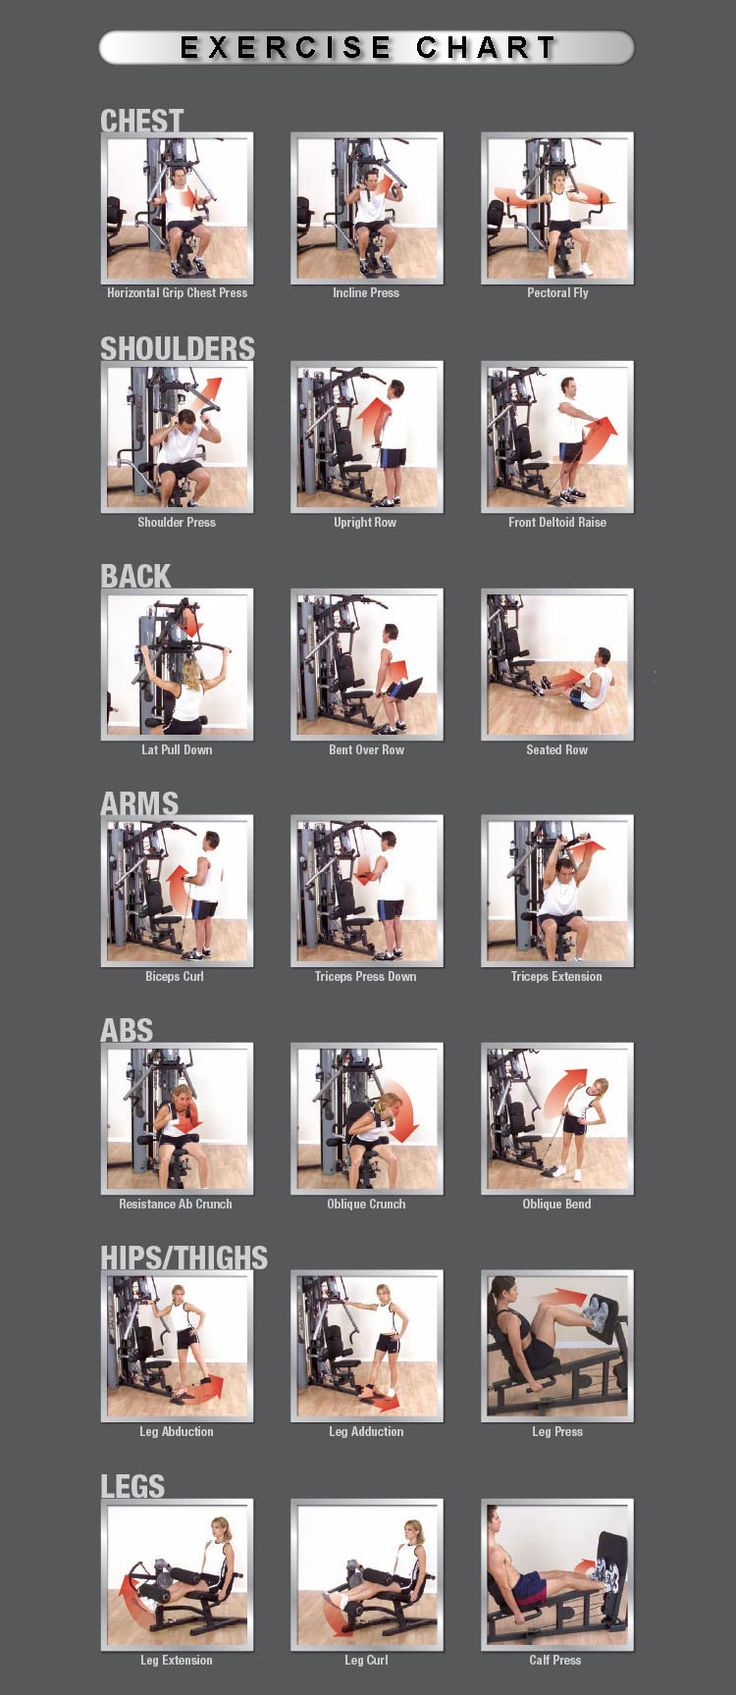 Best 25+ Multi gym ideas on Pinterest | Outdoor pull up bar ...